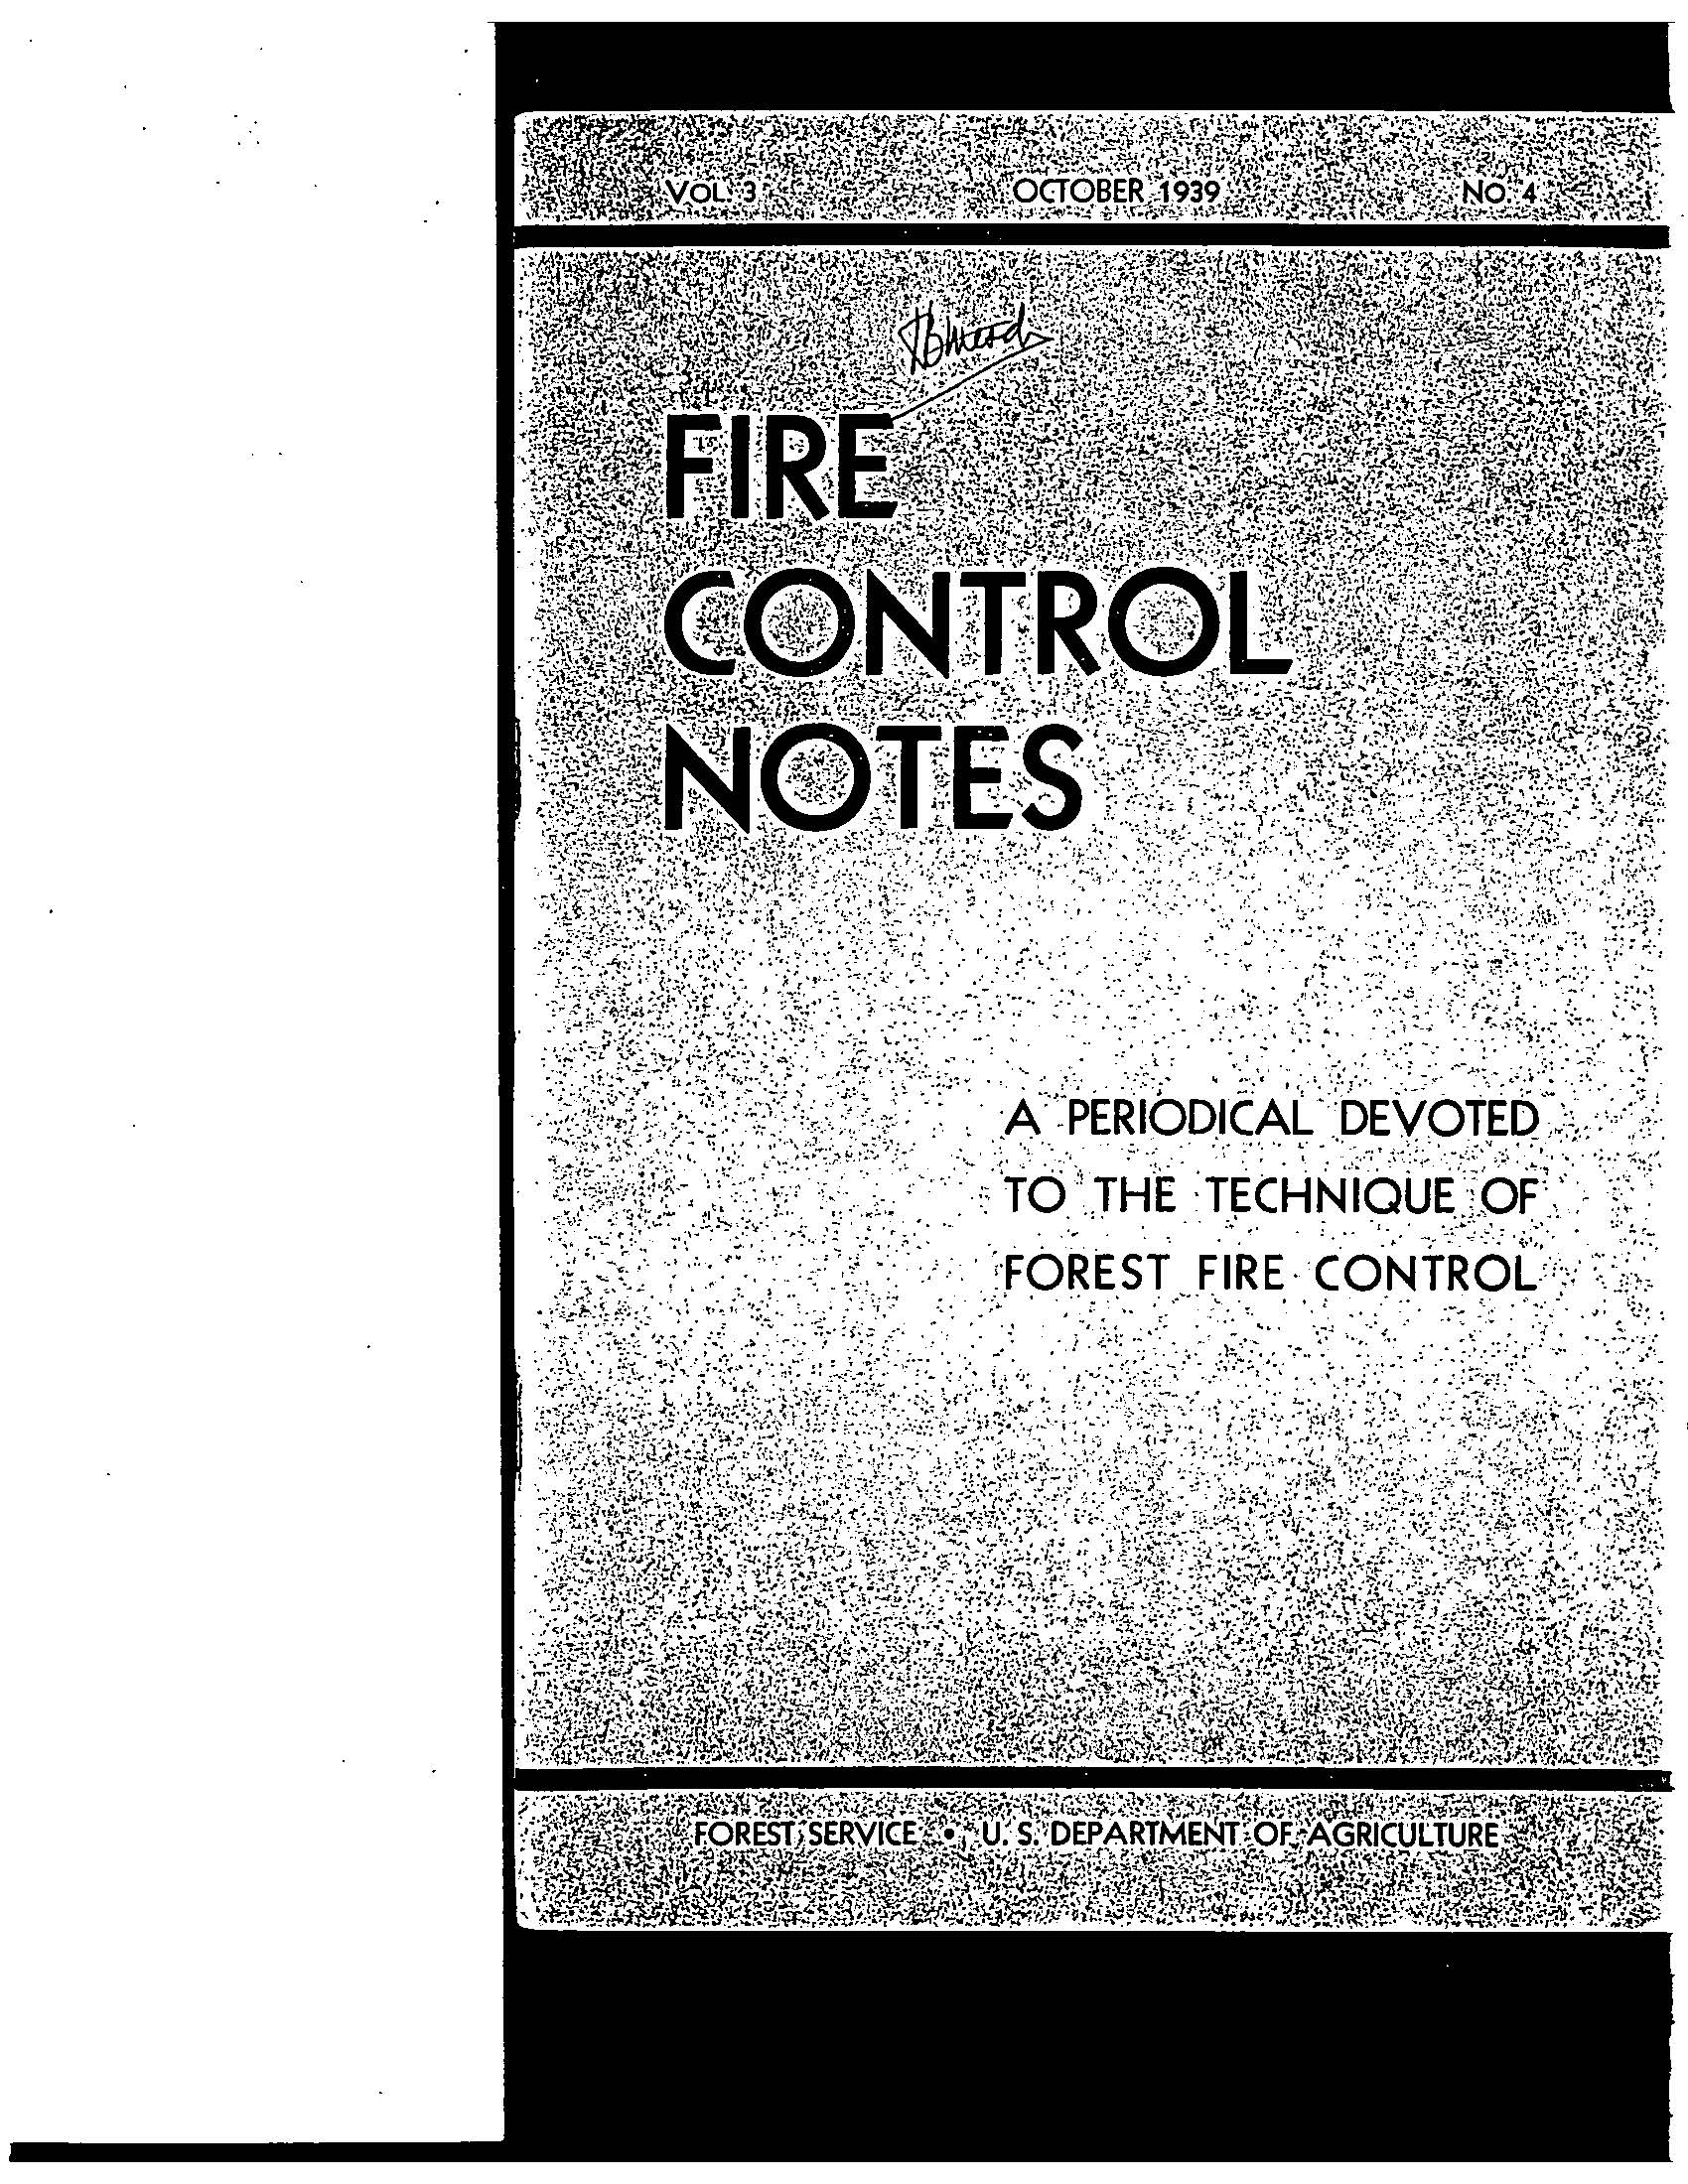 Cover of Fire Management Today Volume 03, Issue 04